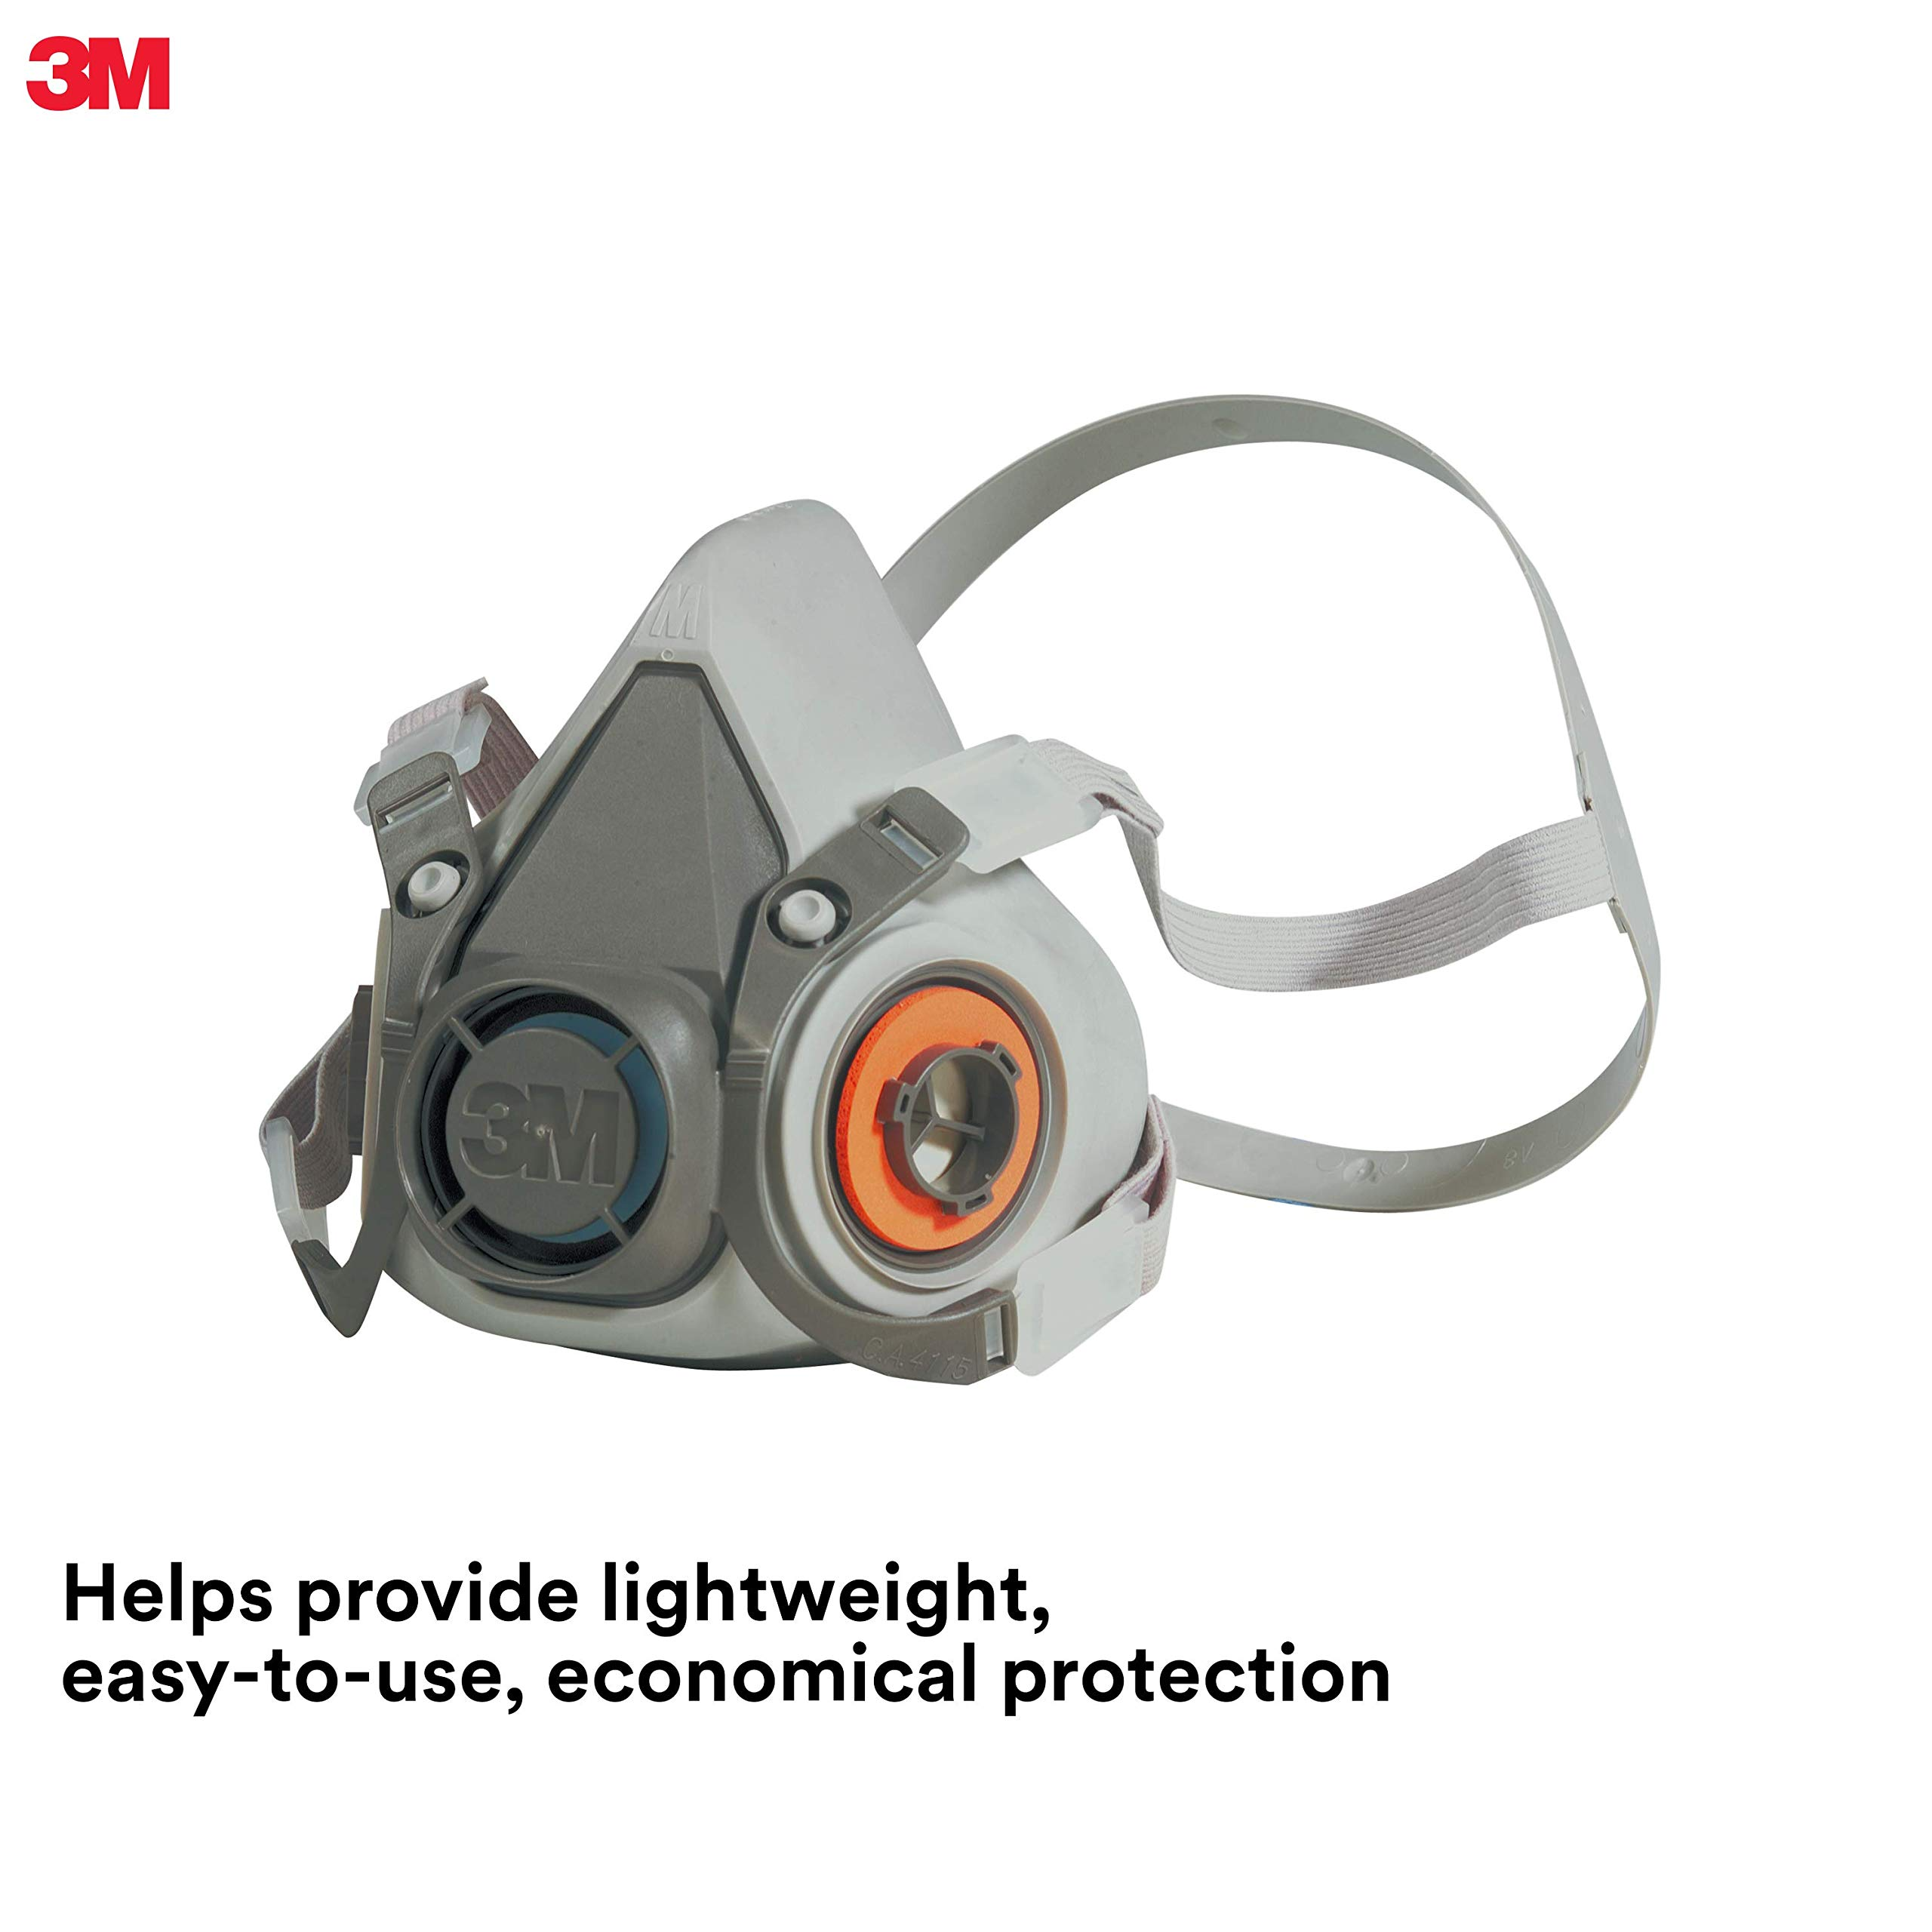 3M Half Facepiece Reusable Respirator 6200/07025(AAD), Respiratory Protection, Medium(Pack of 1) by 3M Personal Protective Equipment